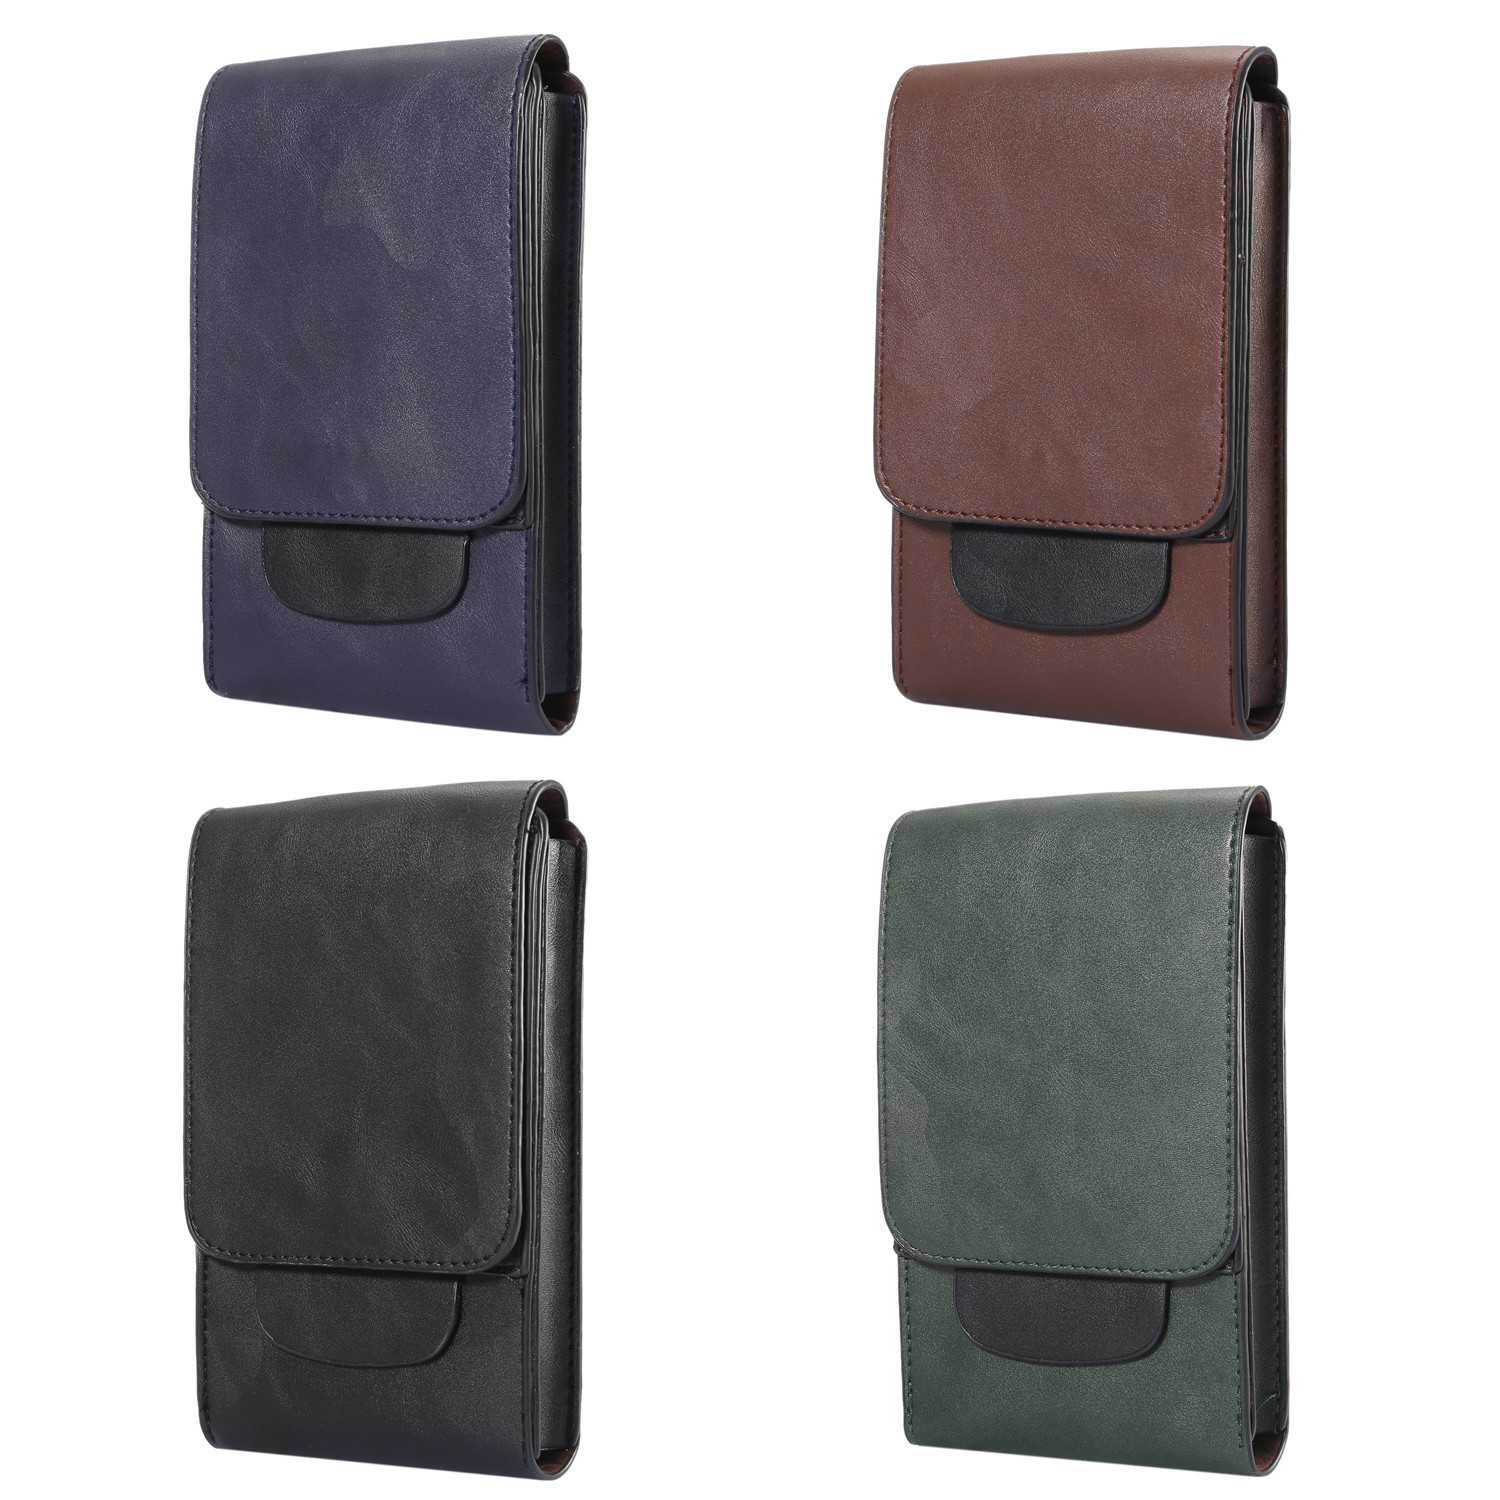 the best attitude 162c3 0dd46 Details about Mobile Phone Holder Leather Case Cover Waist Hang Belt  Holster Clip Pouch Sleeve